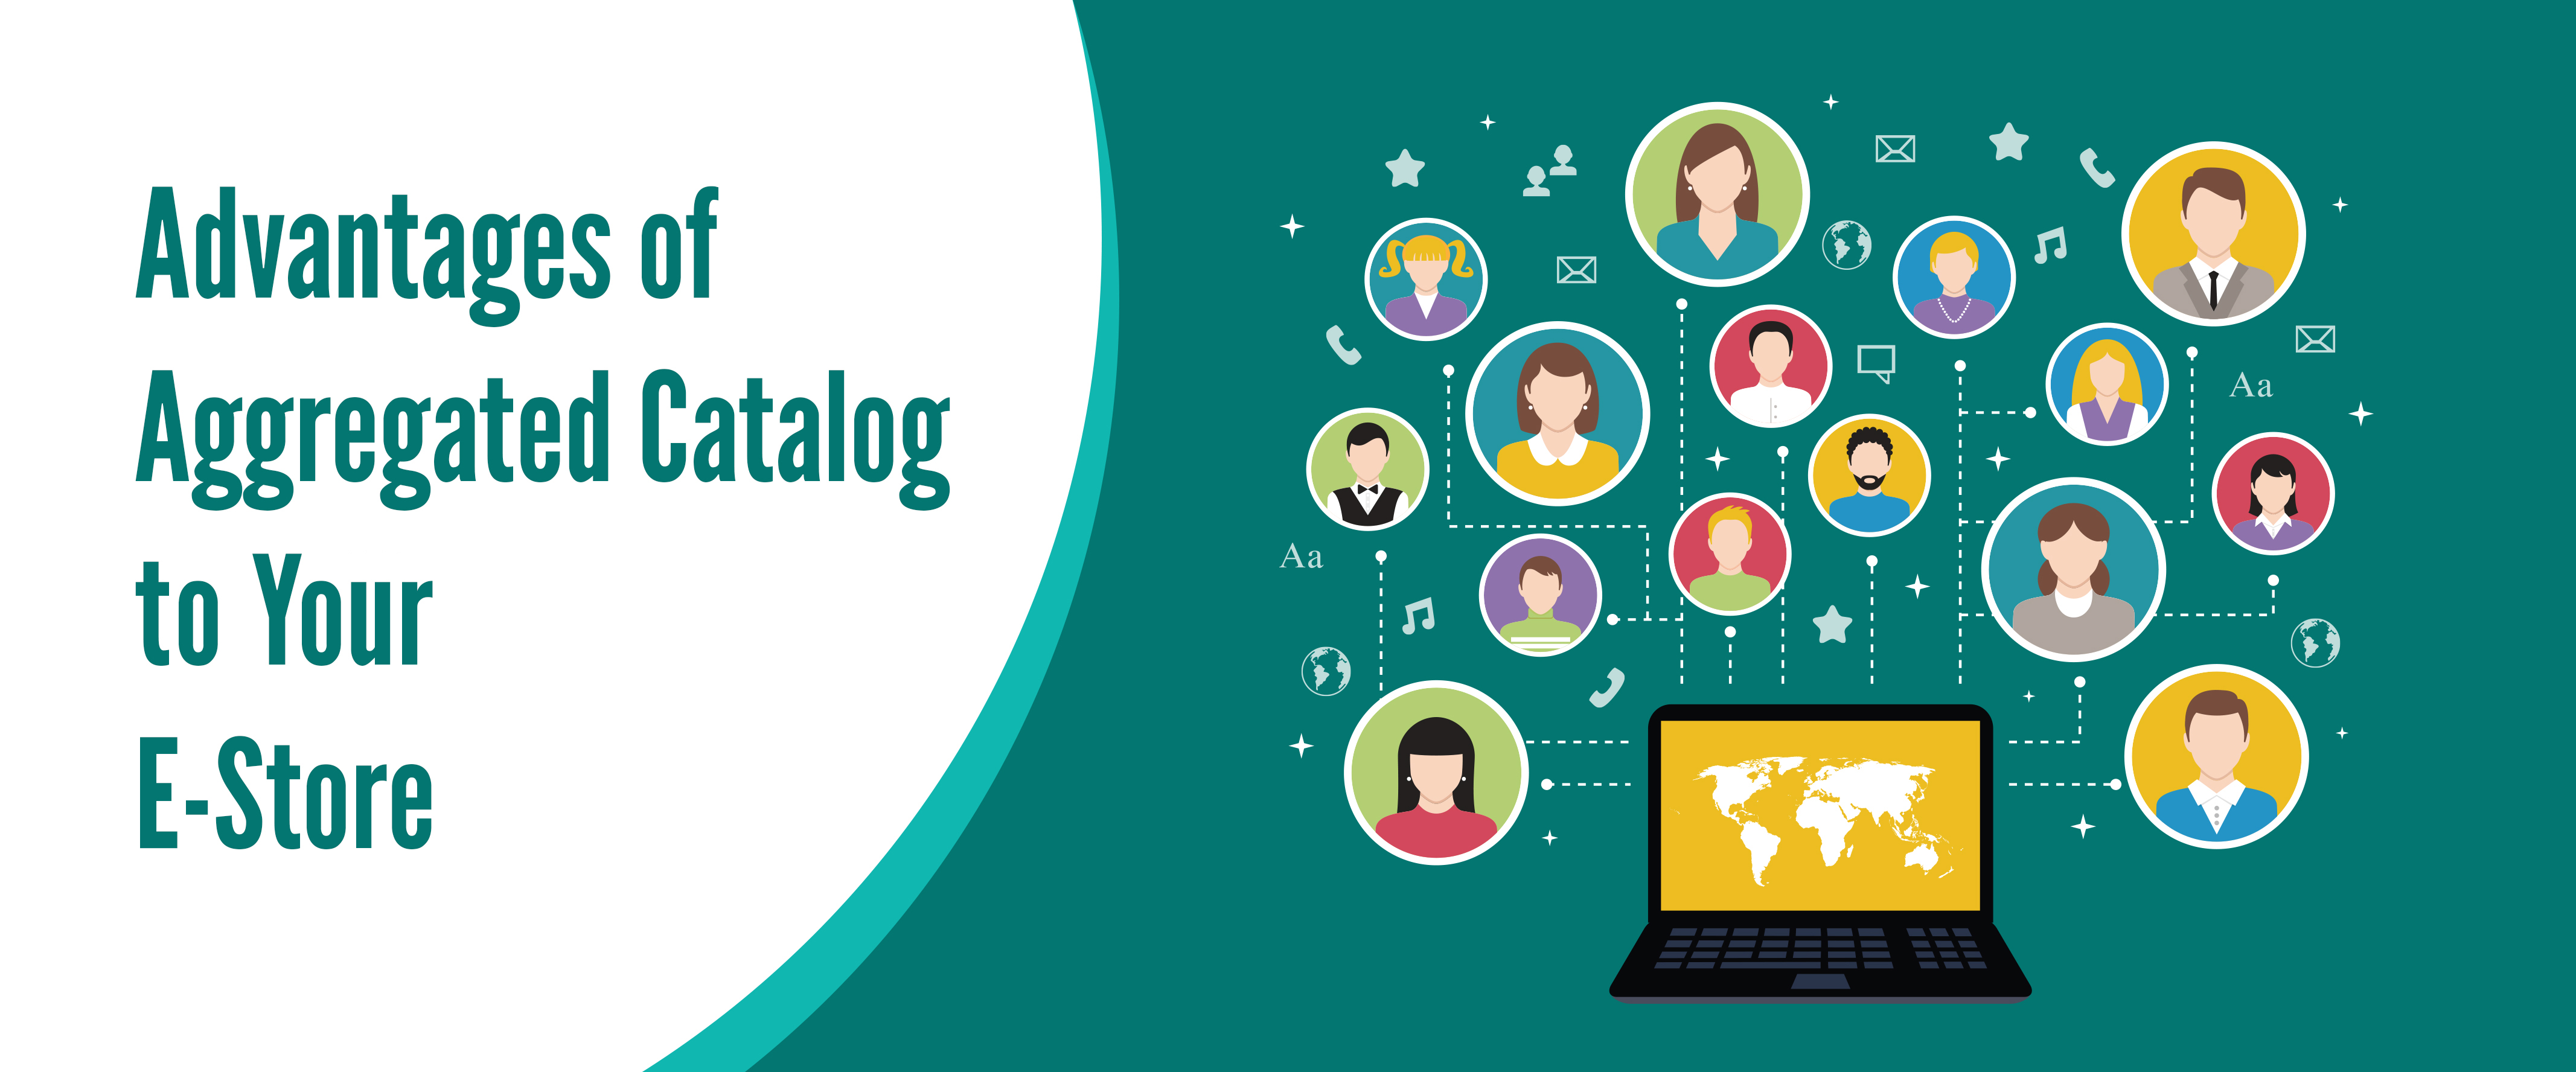 Advantages of Aggregated Catalog to Your E-Store